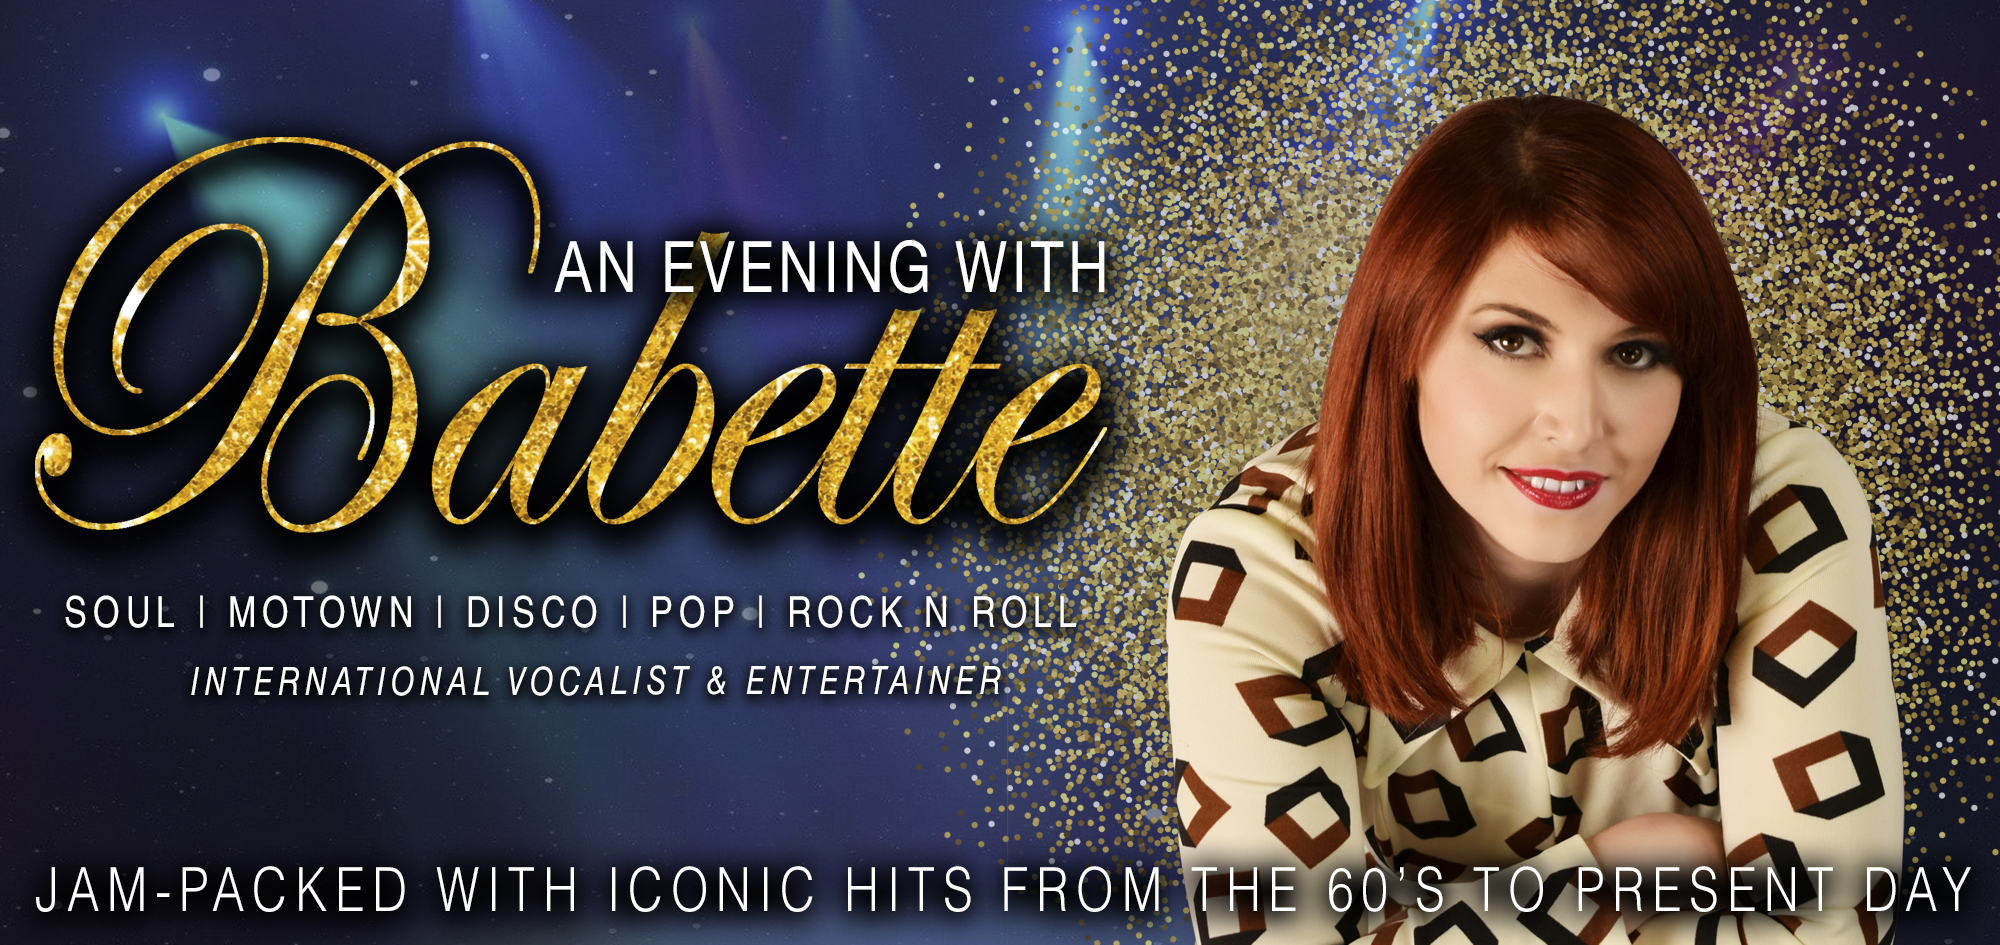 Evening With Babette banner